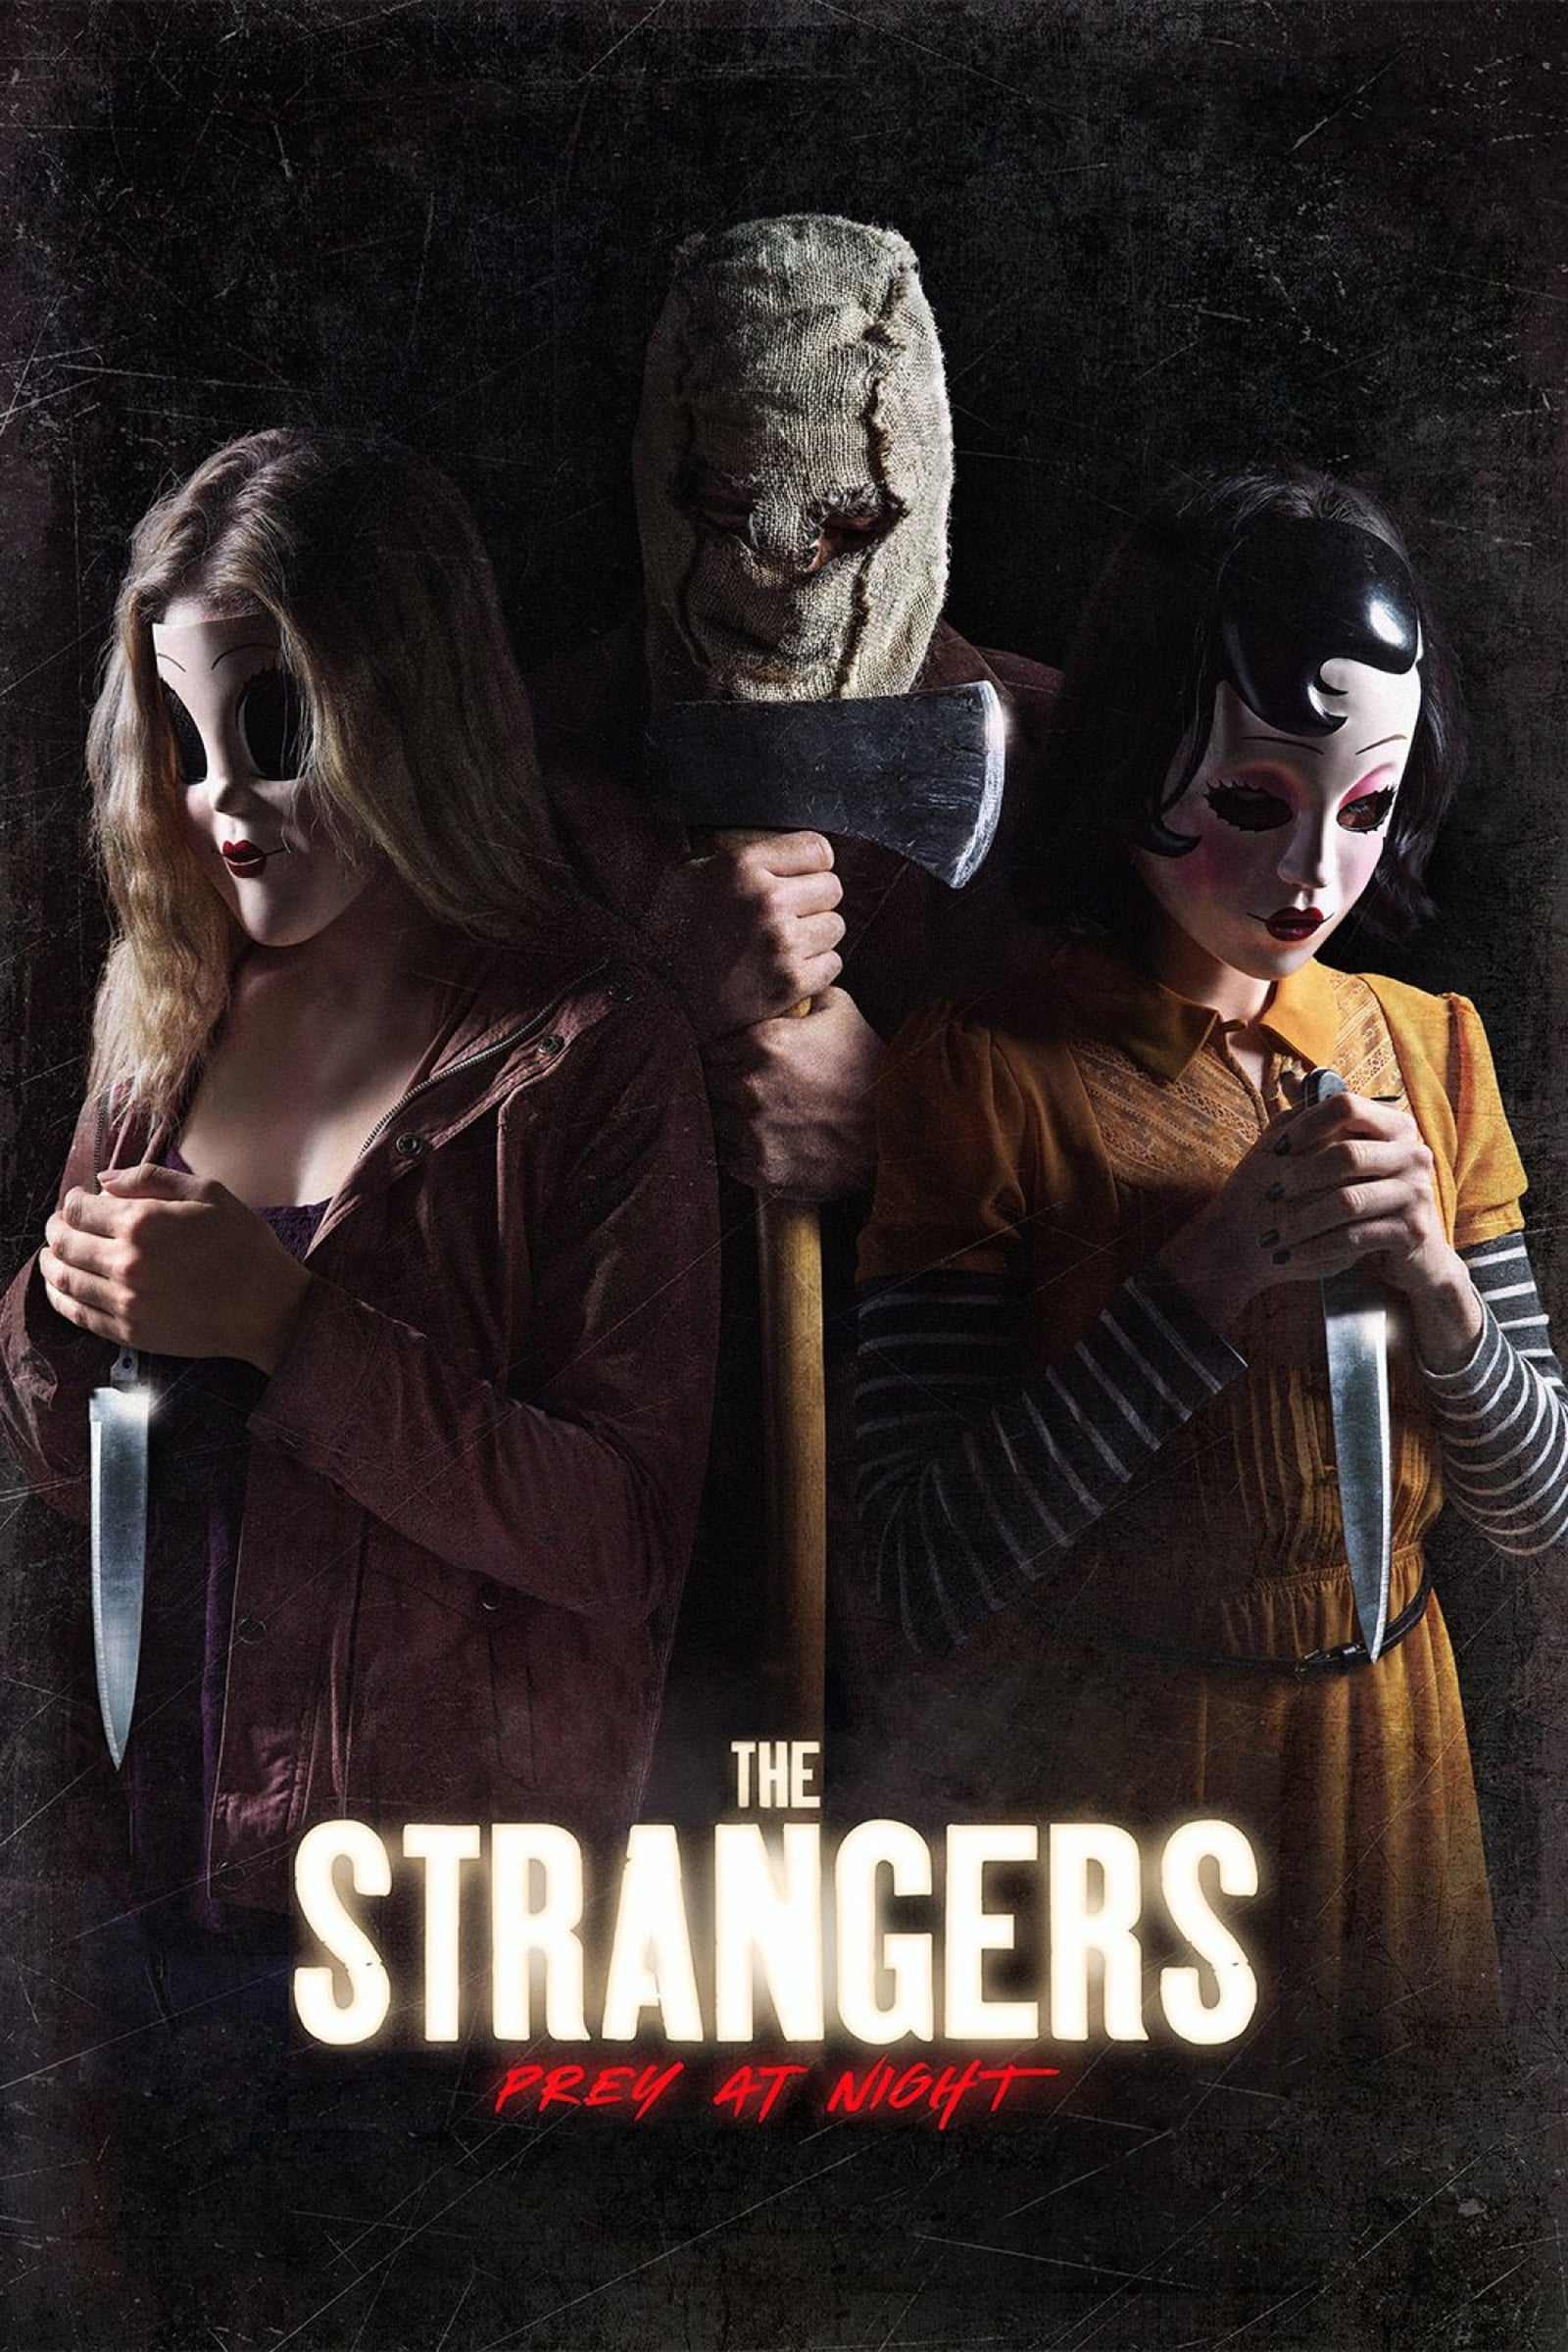 image for The Strangers: Prey at Night